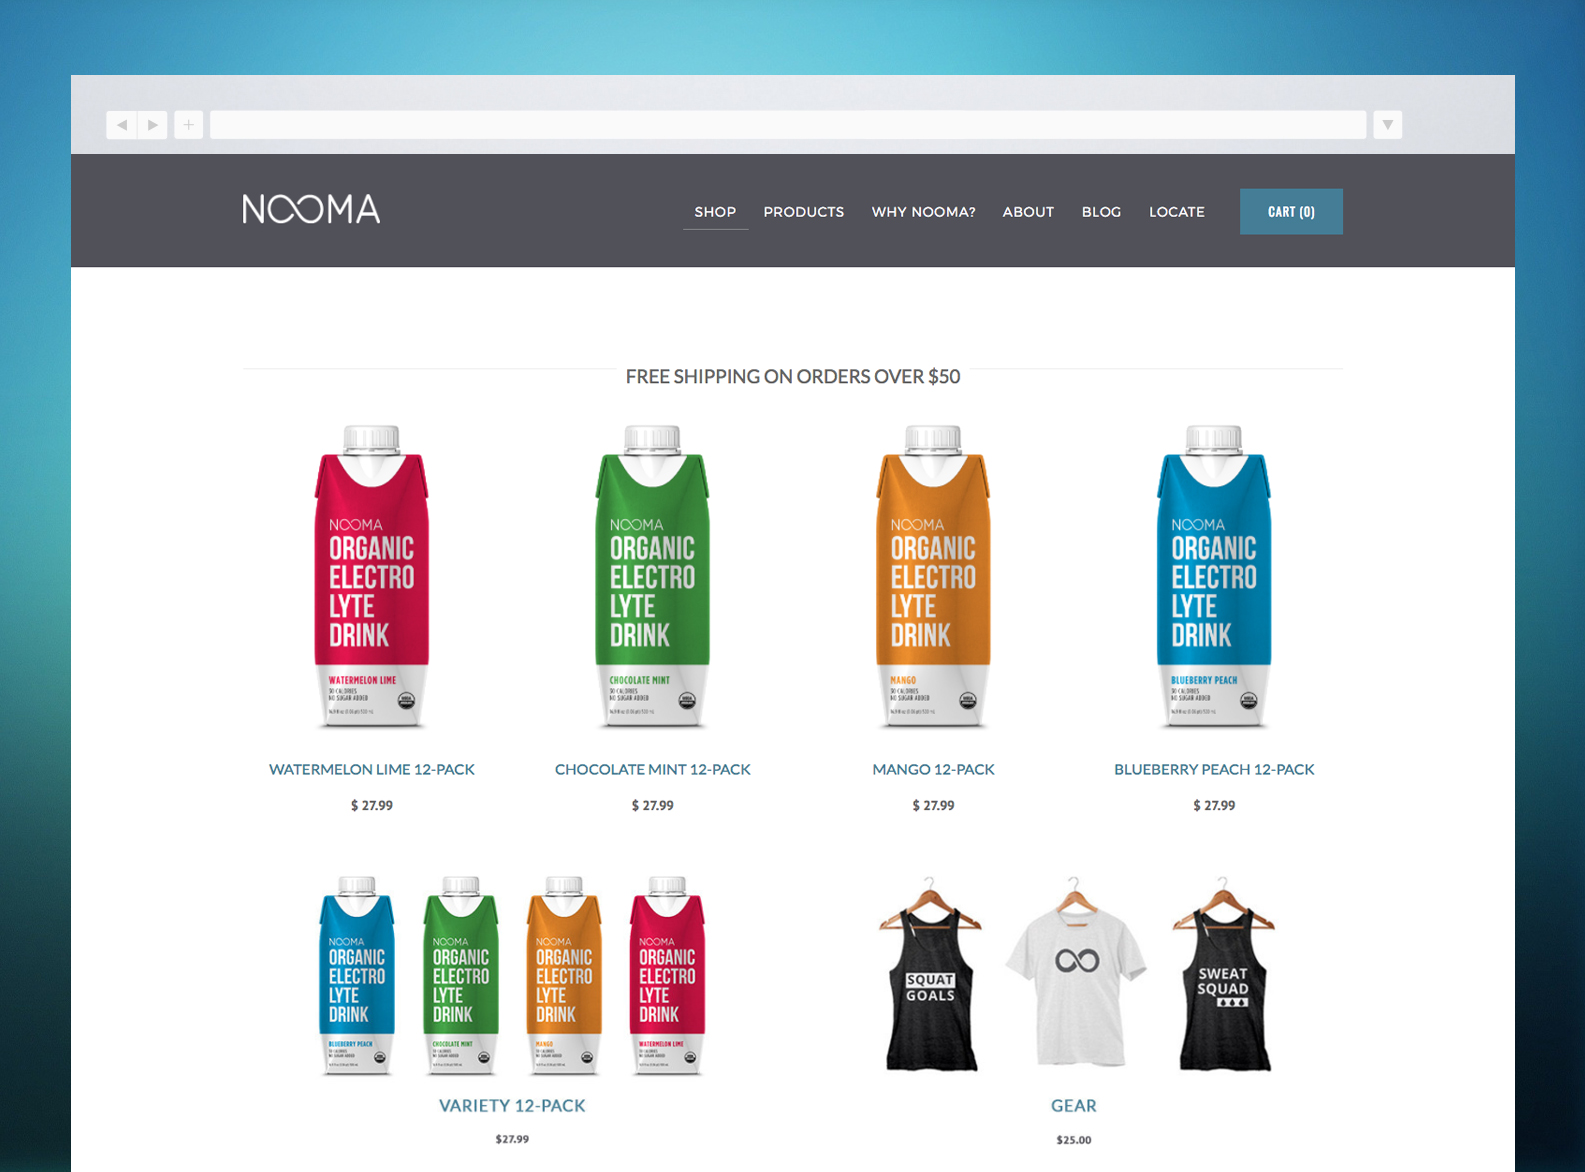 NOOMA Website Shop